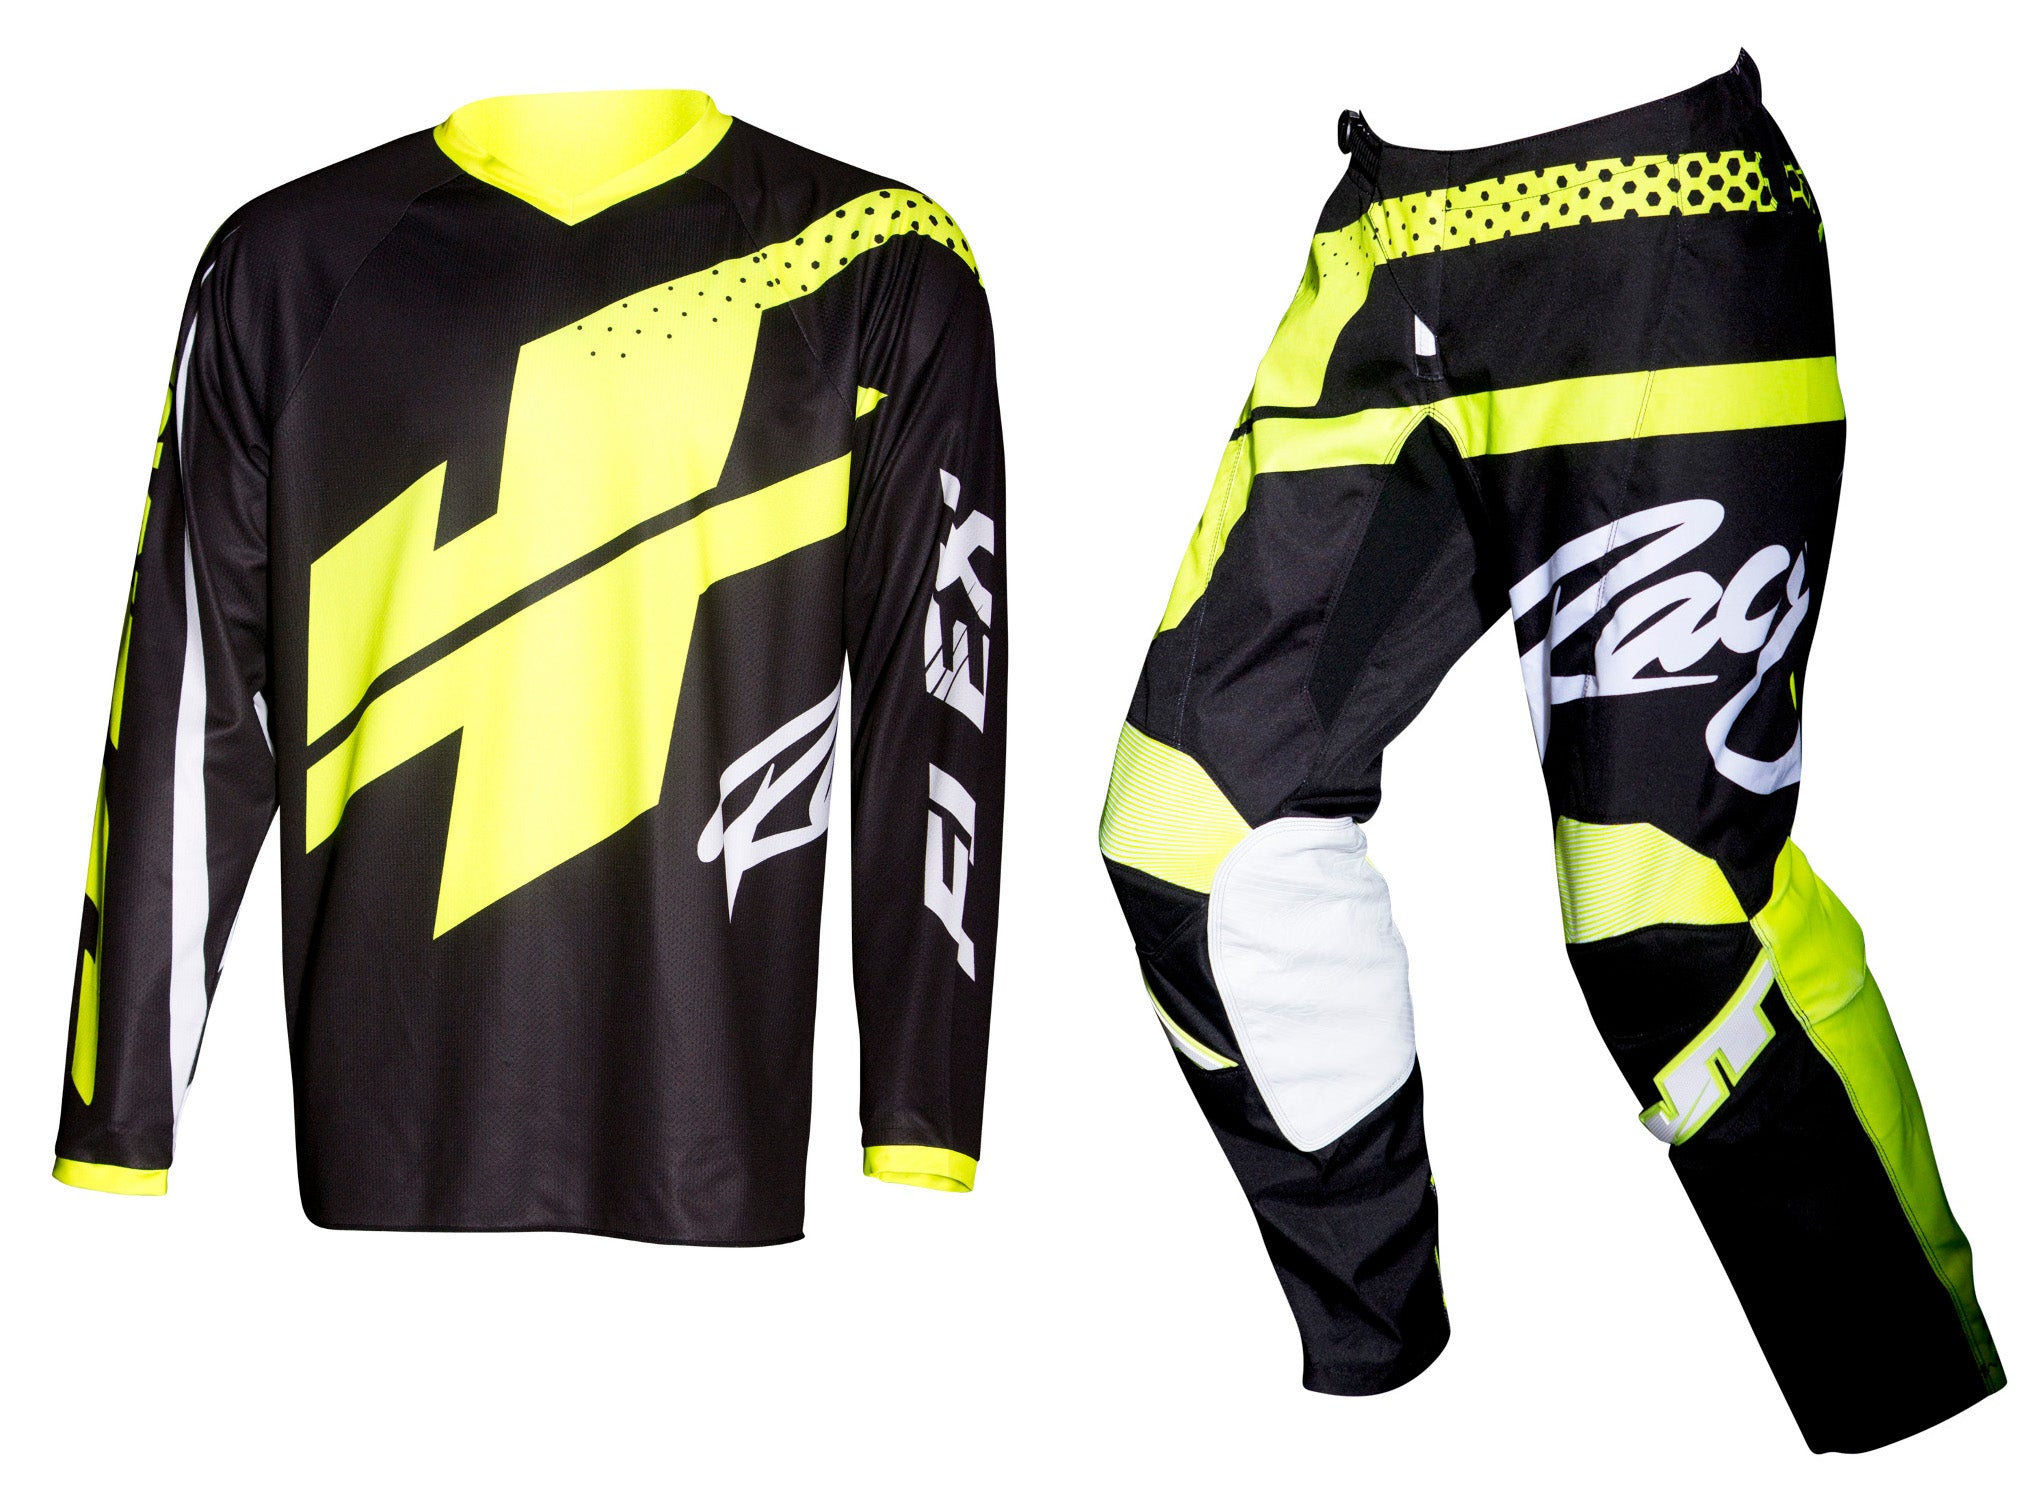 JT RACING USA-Flex Hi-Lo Jersey, Black/Neon Yellow